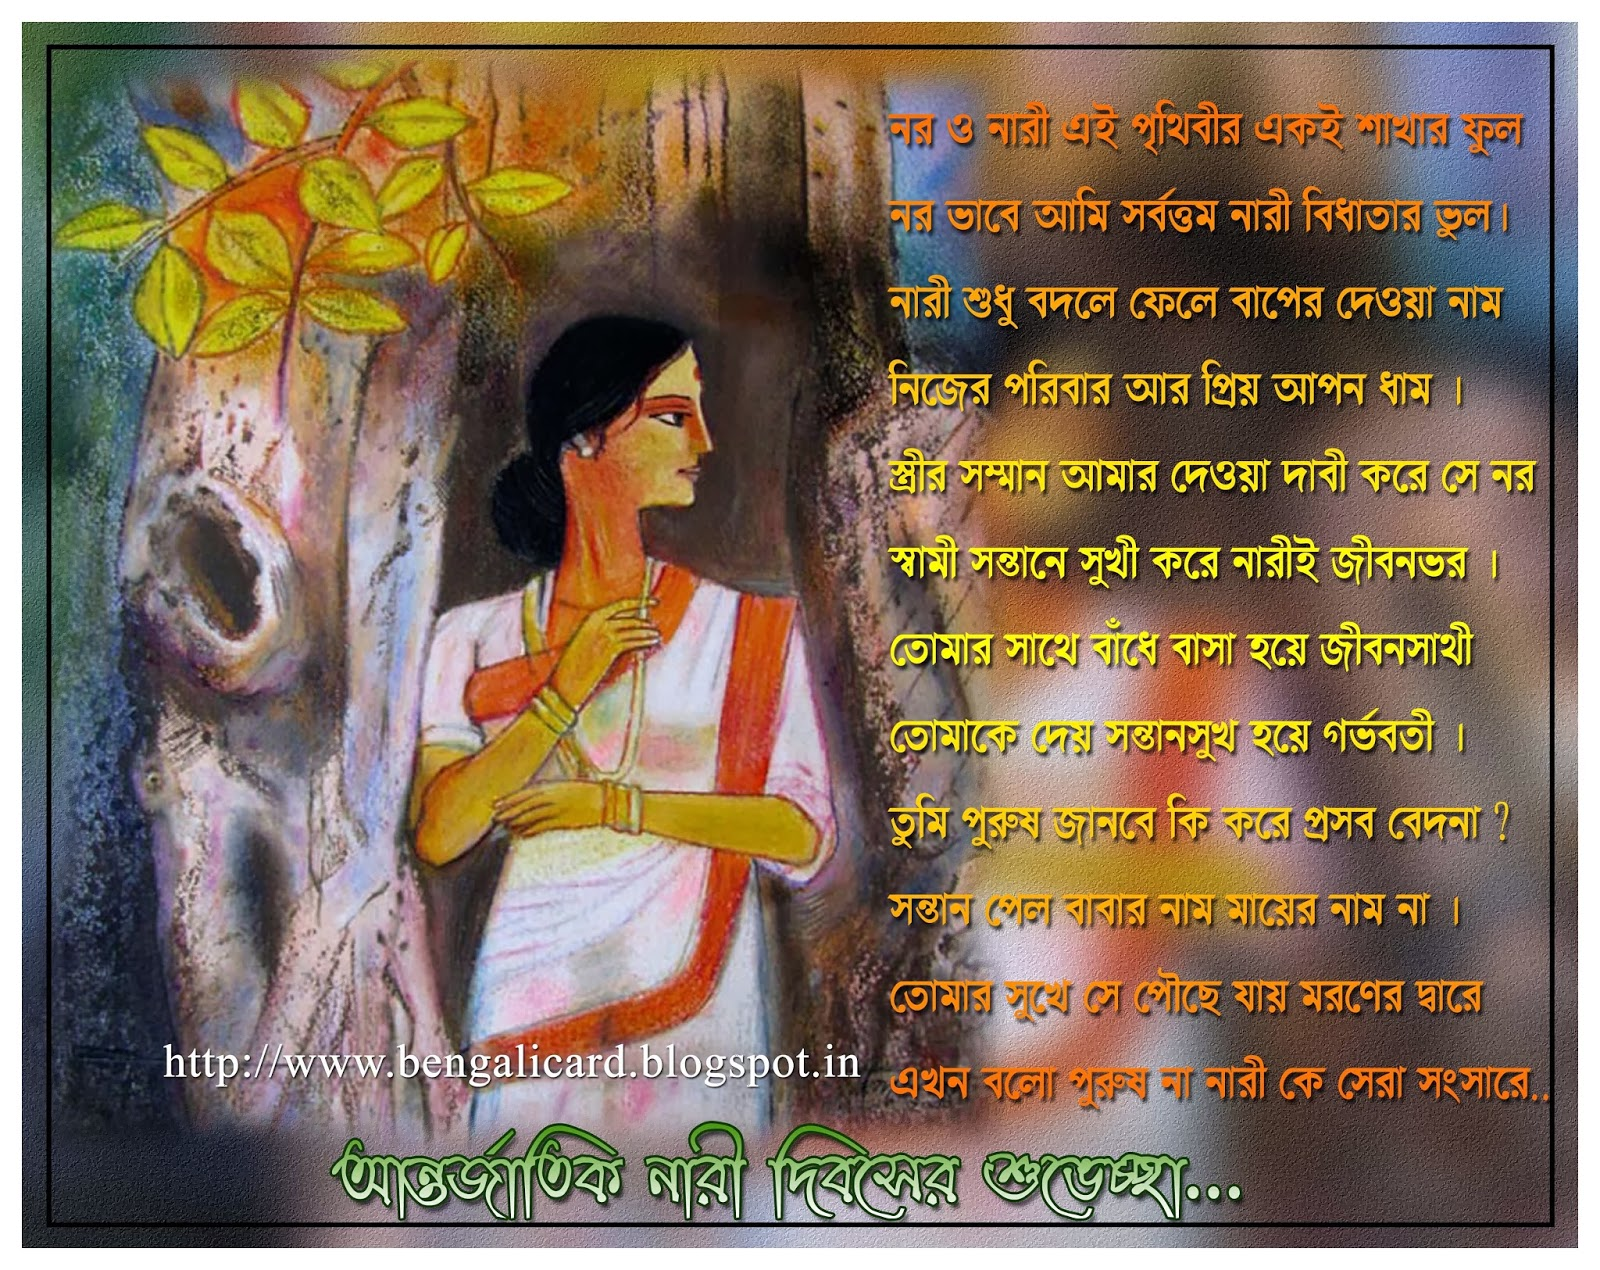 Bengali card ratha yatra greetings friday 7 march 2014 m4hsunfo